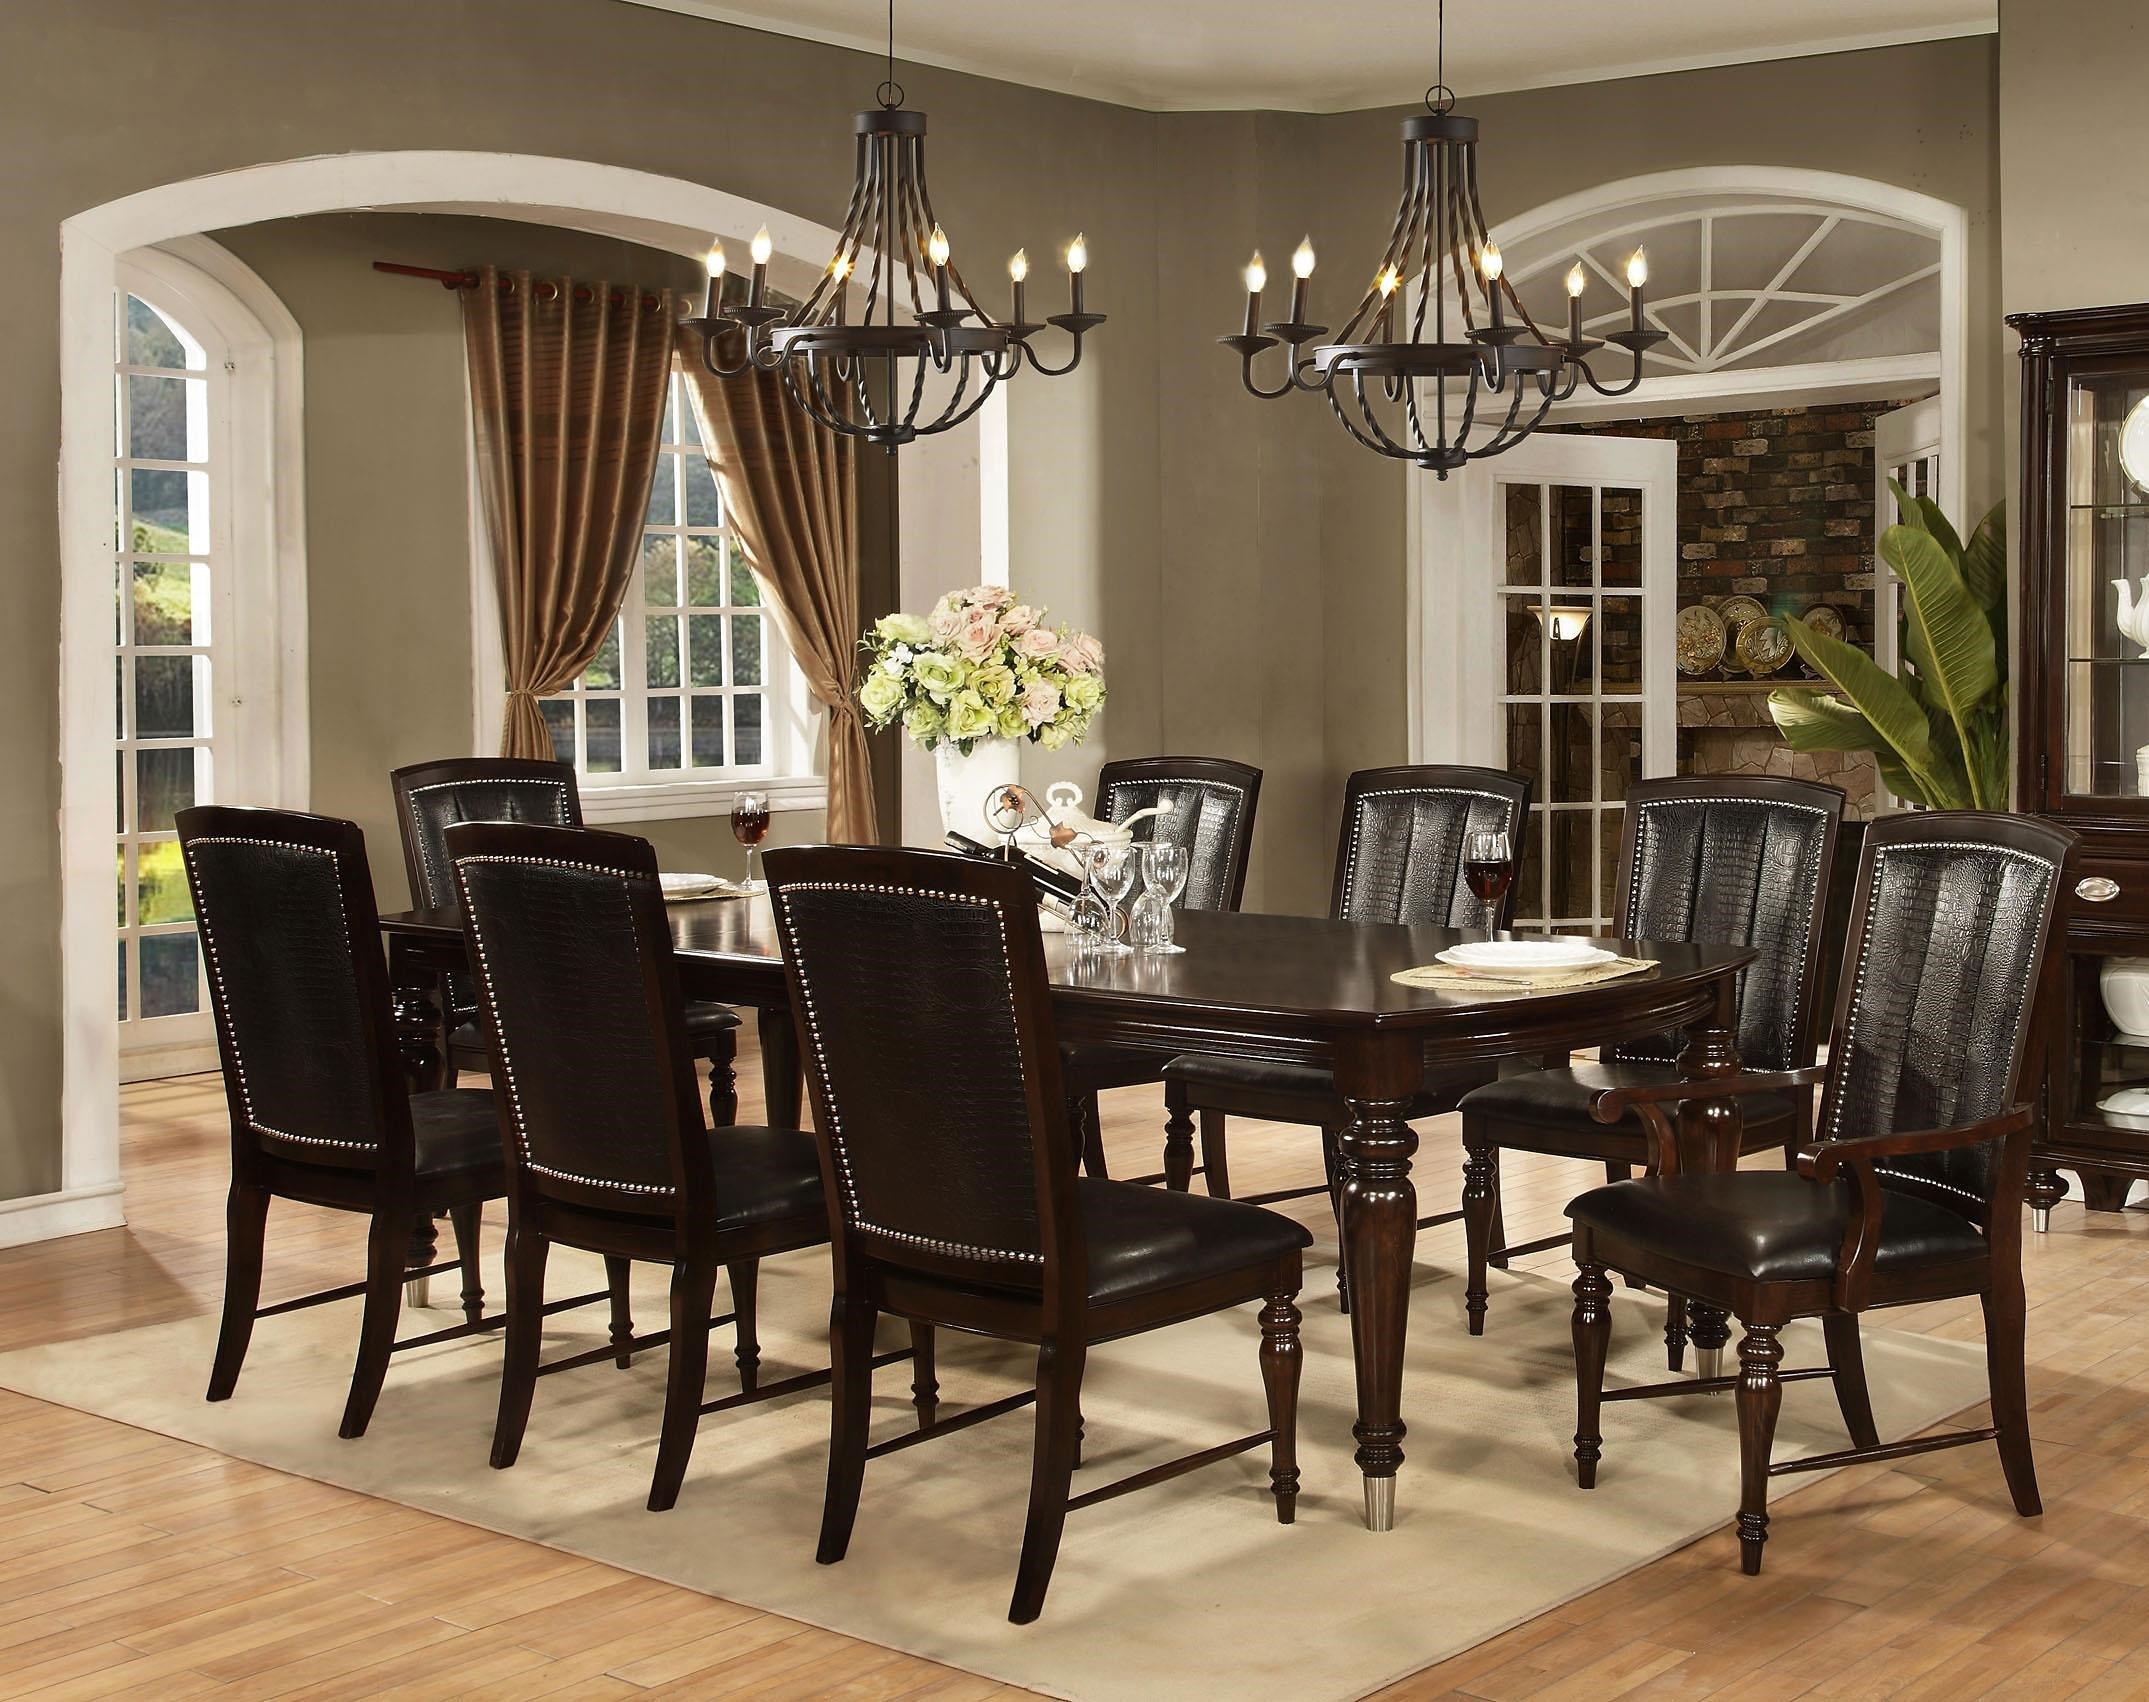 Avalon Furniture Dundee Place 9 Piece Leg Table with 2